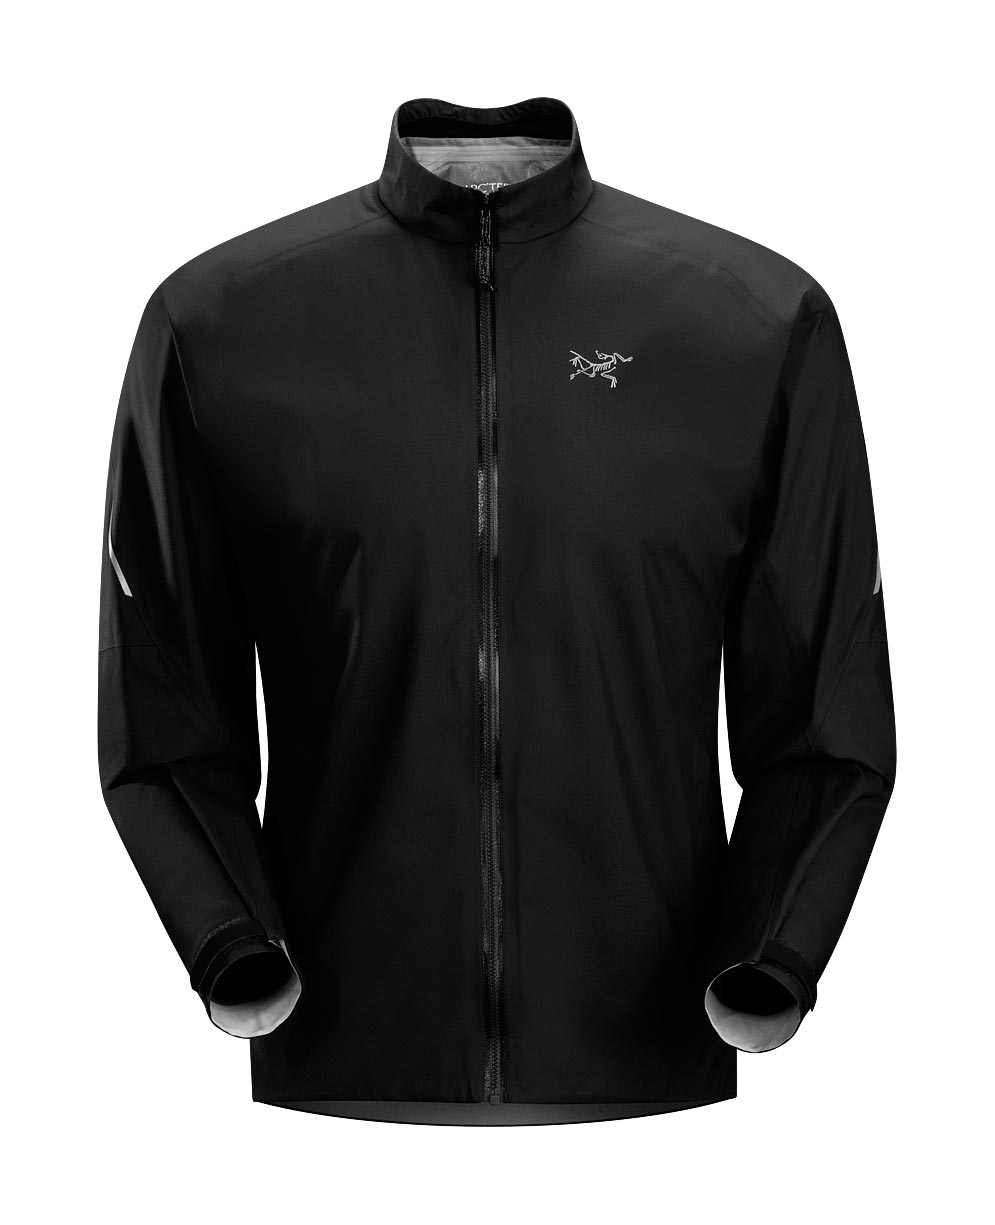 Arcteryx Black Visio FL Jacket - New